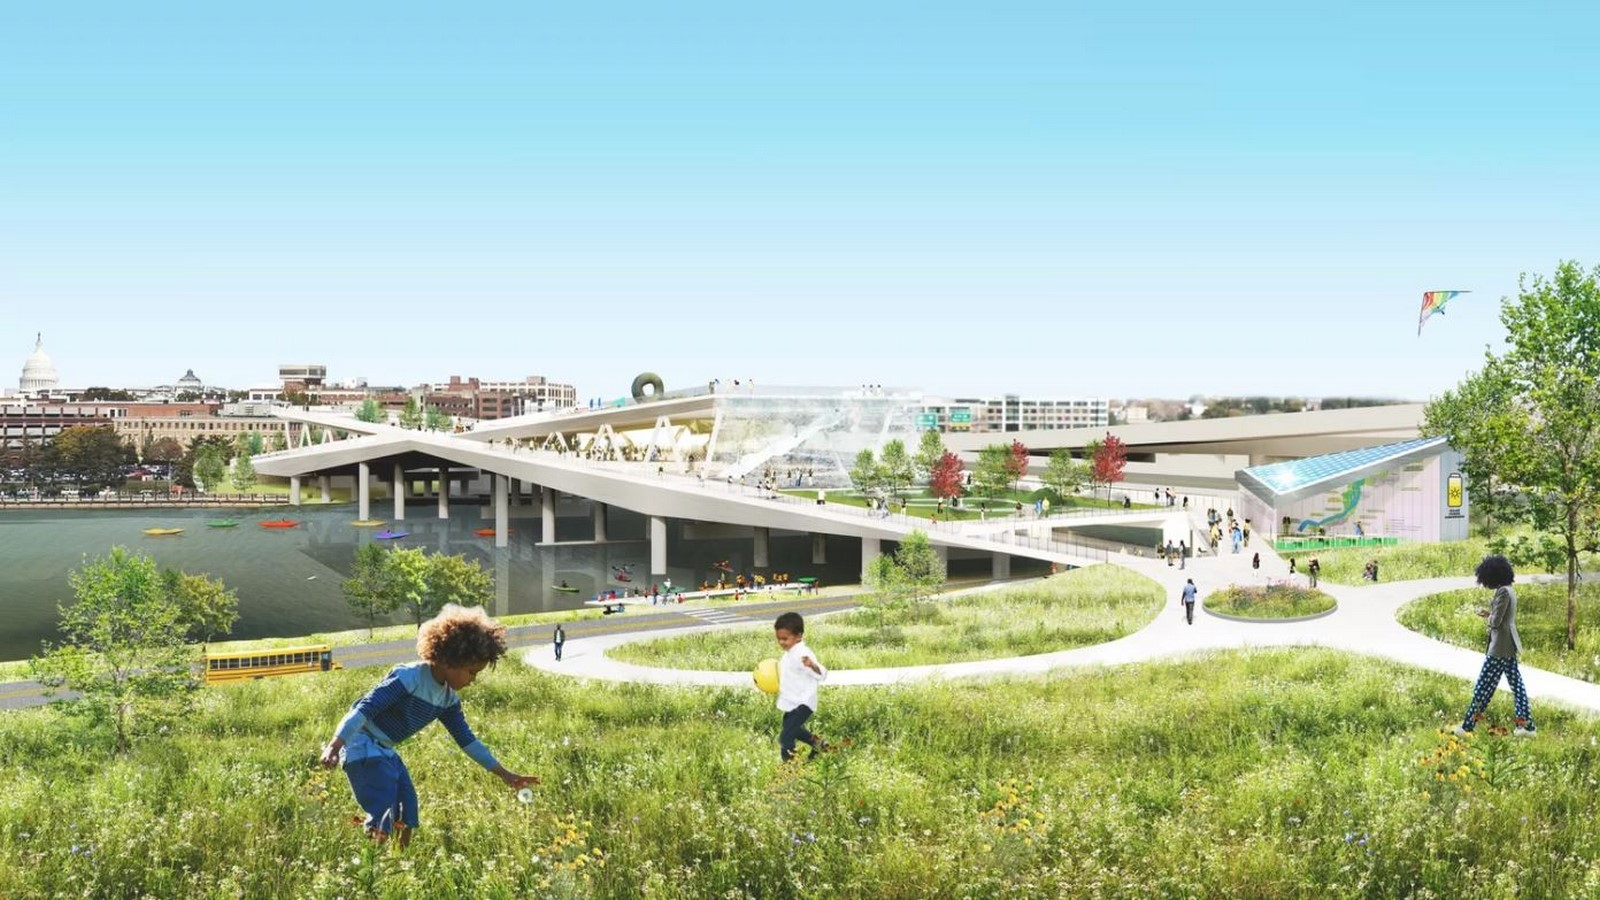 11th Street Bridge Park by Rem Koolhaas: Uniting the divided city - Sheet18